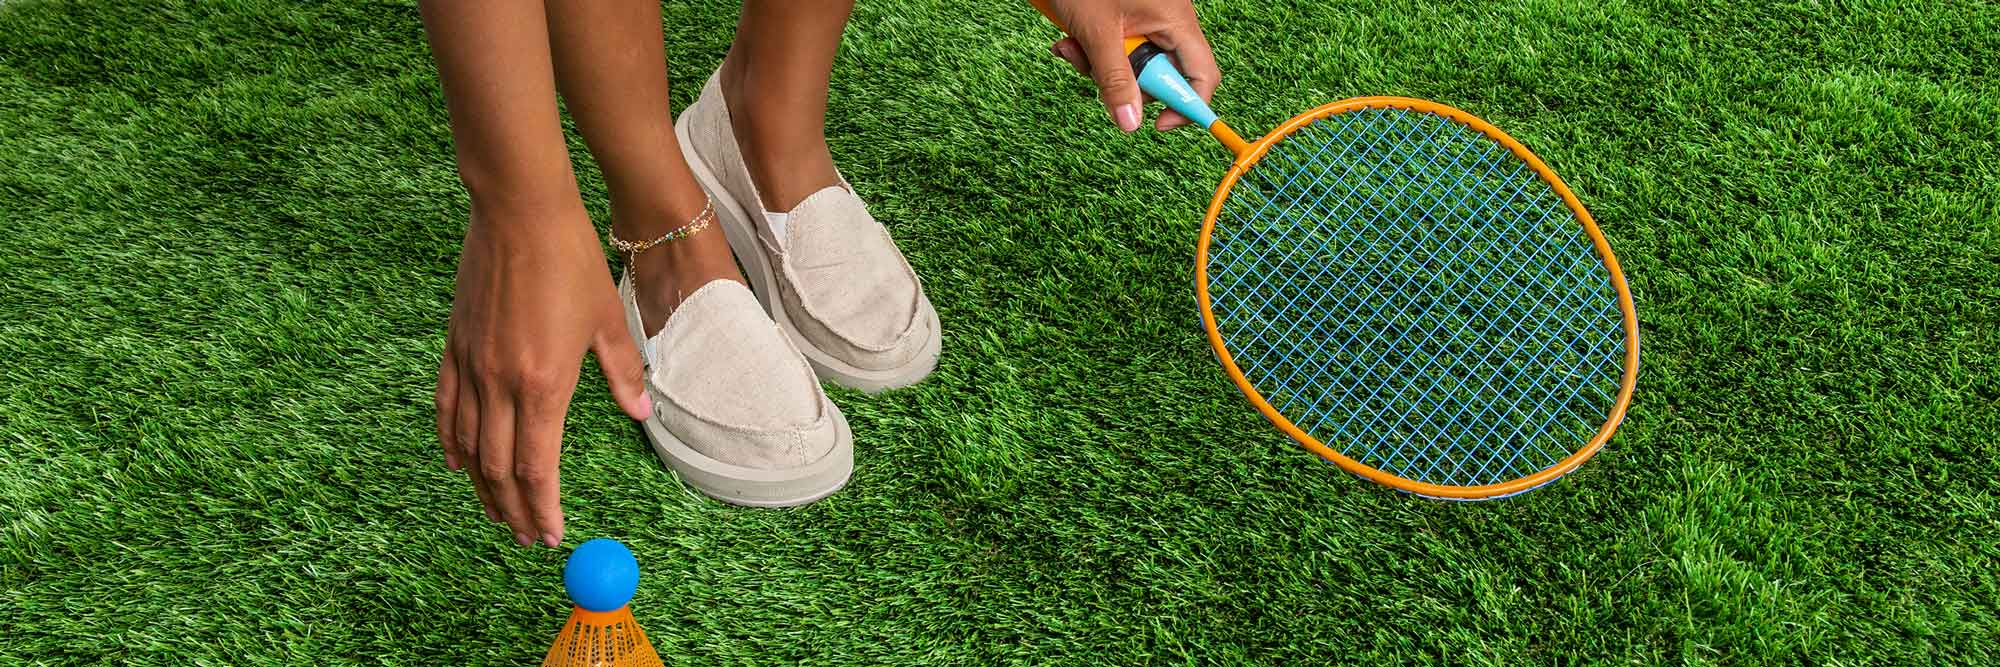 Close up of a woman's feet wearing Sanuk shoes and holding a racket.